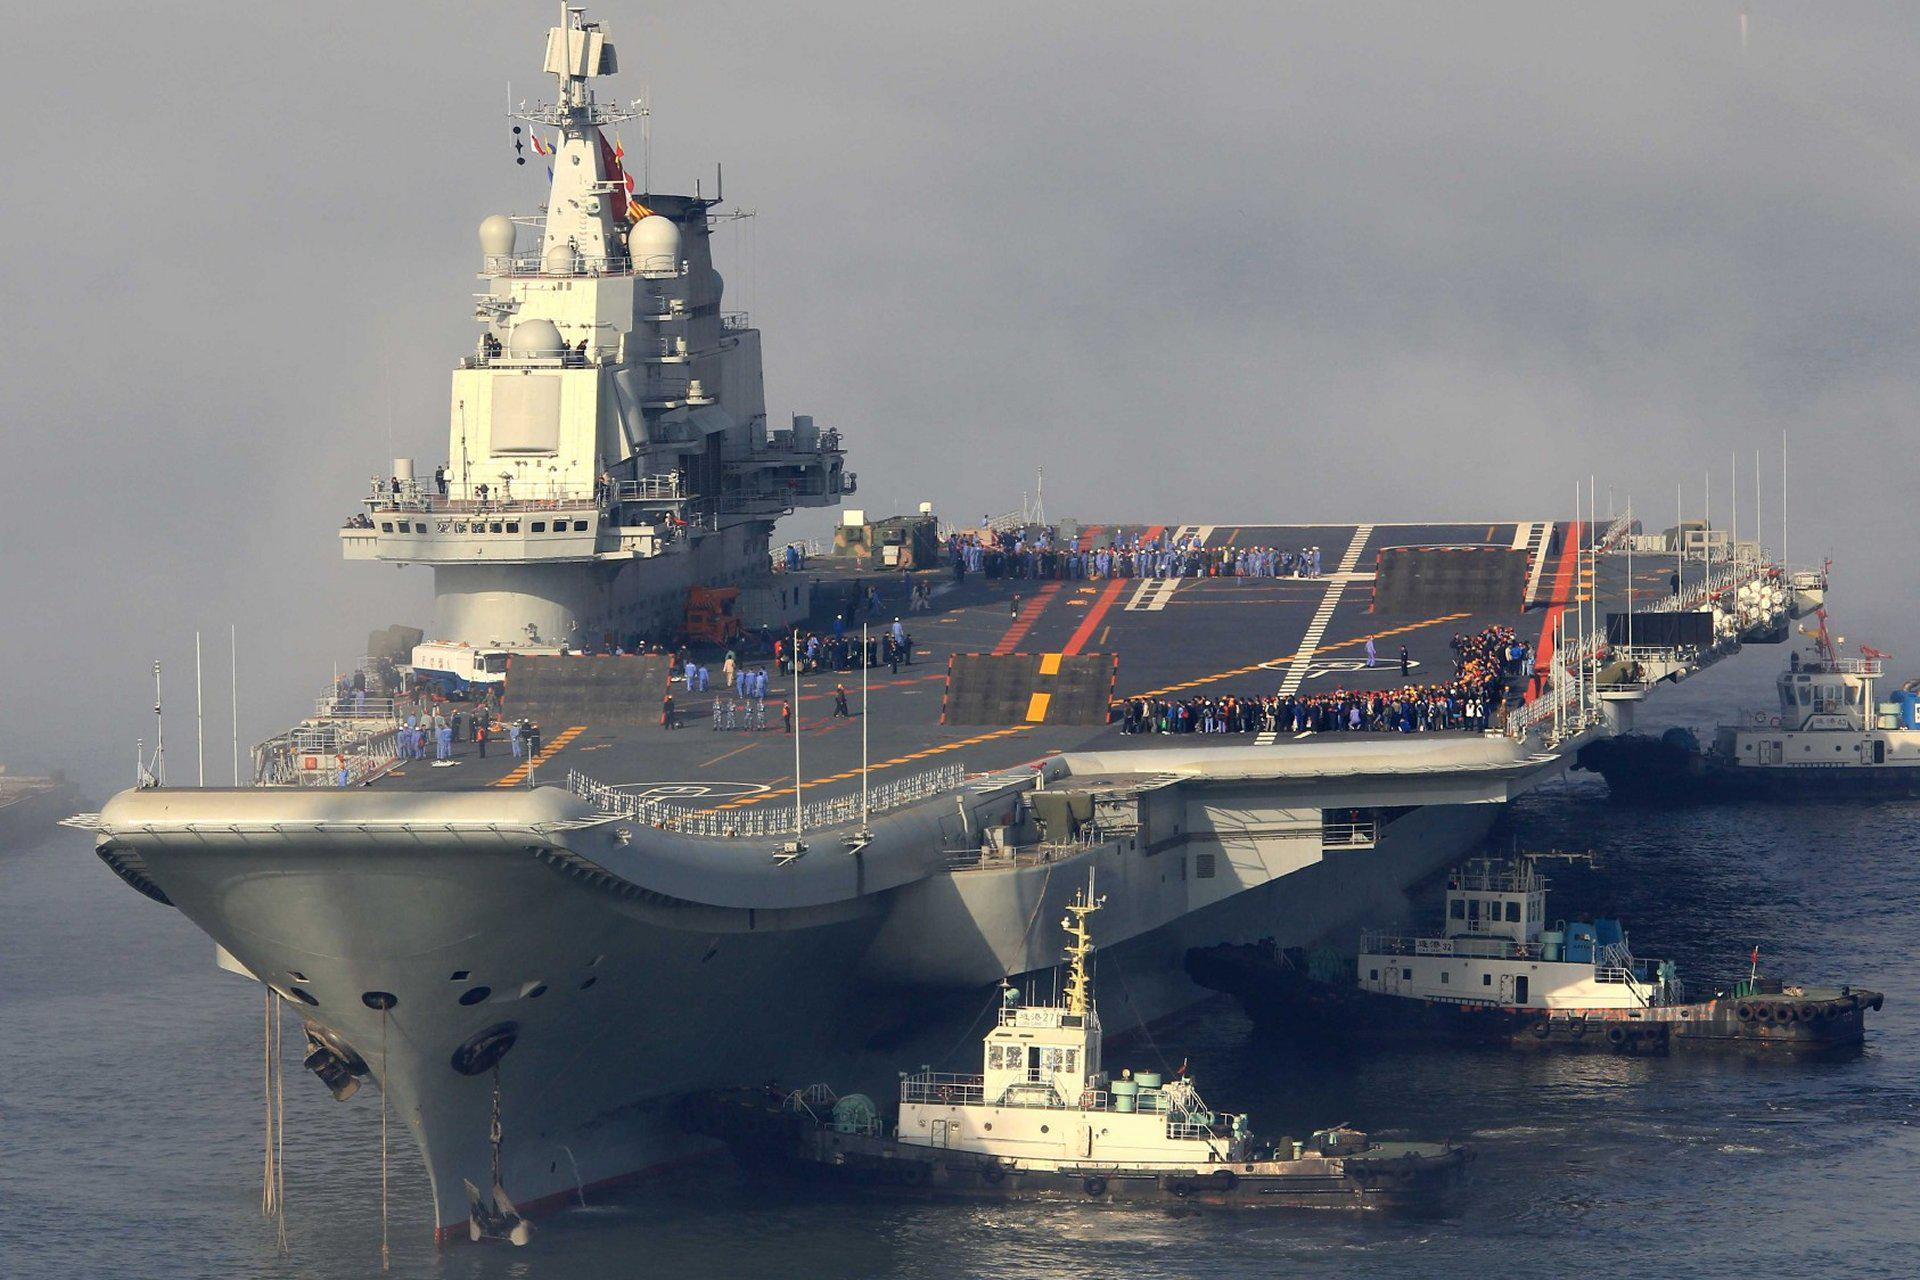 Chinese Aircraft Carrier Liaoning wallpapers HD quality